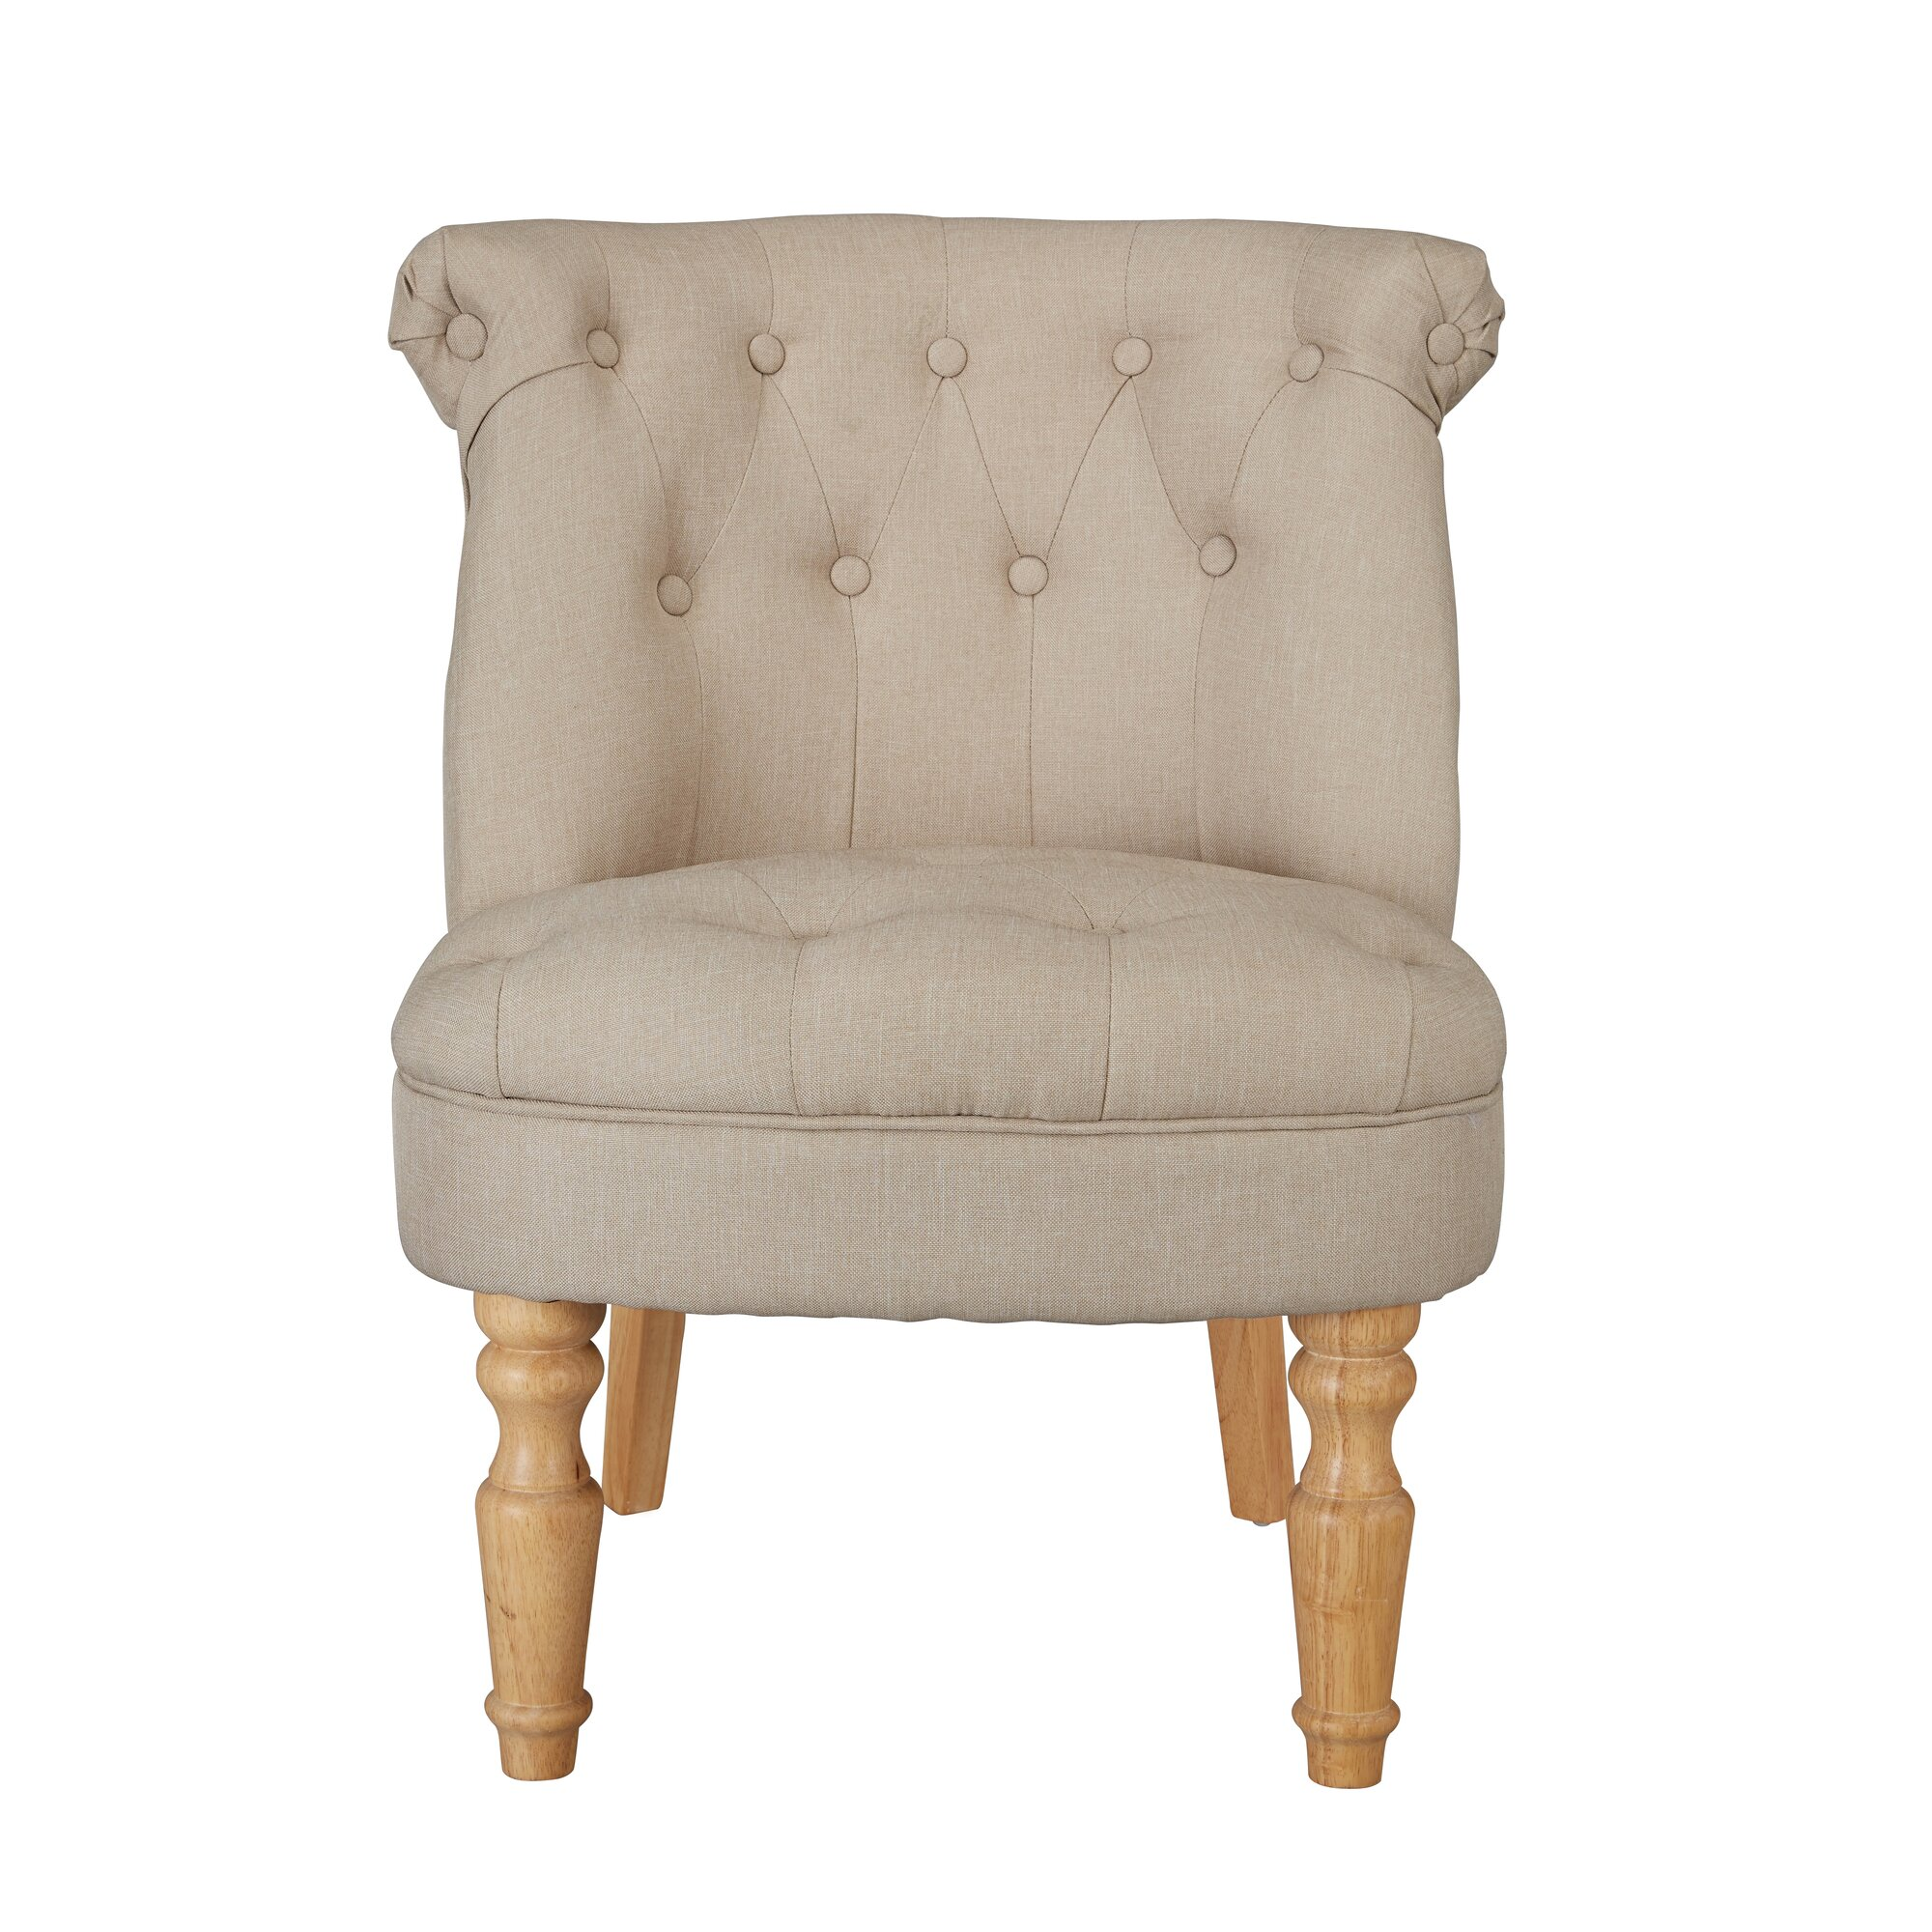 Seater queen anne high back wing sofa uk manufactured antique green - Magdalena Slipper Chair